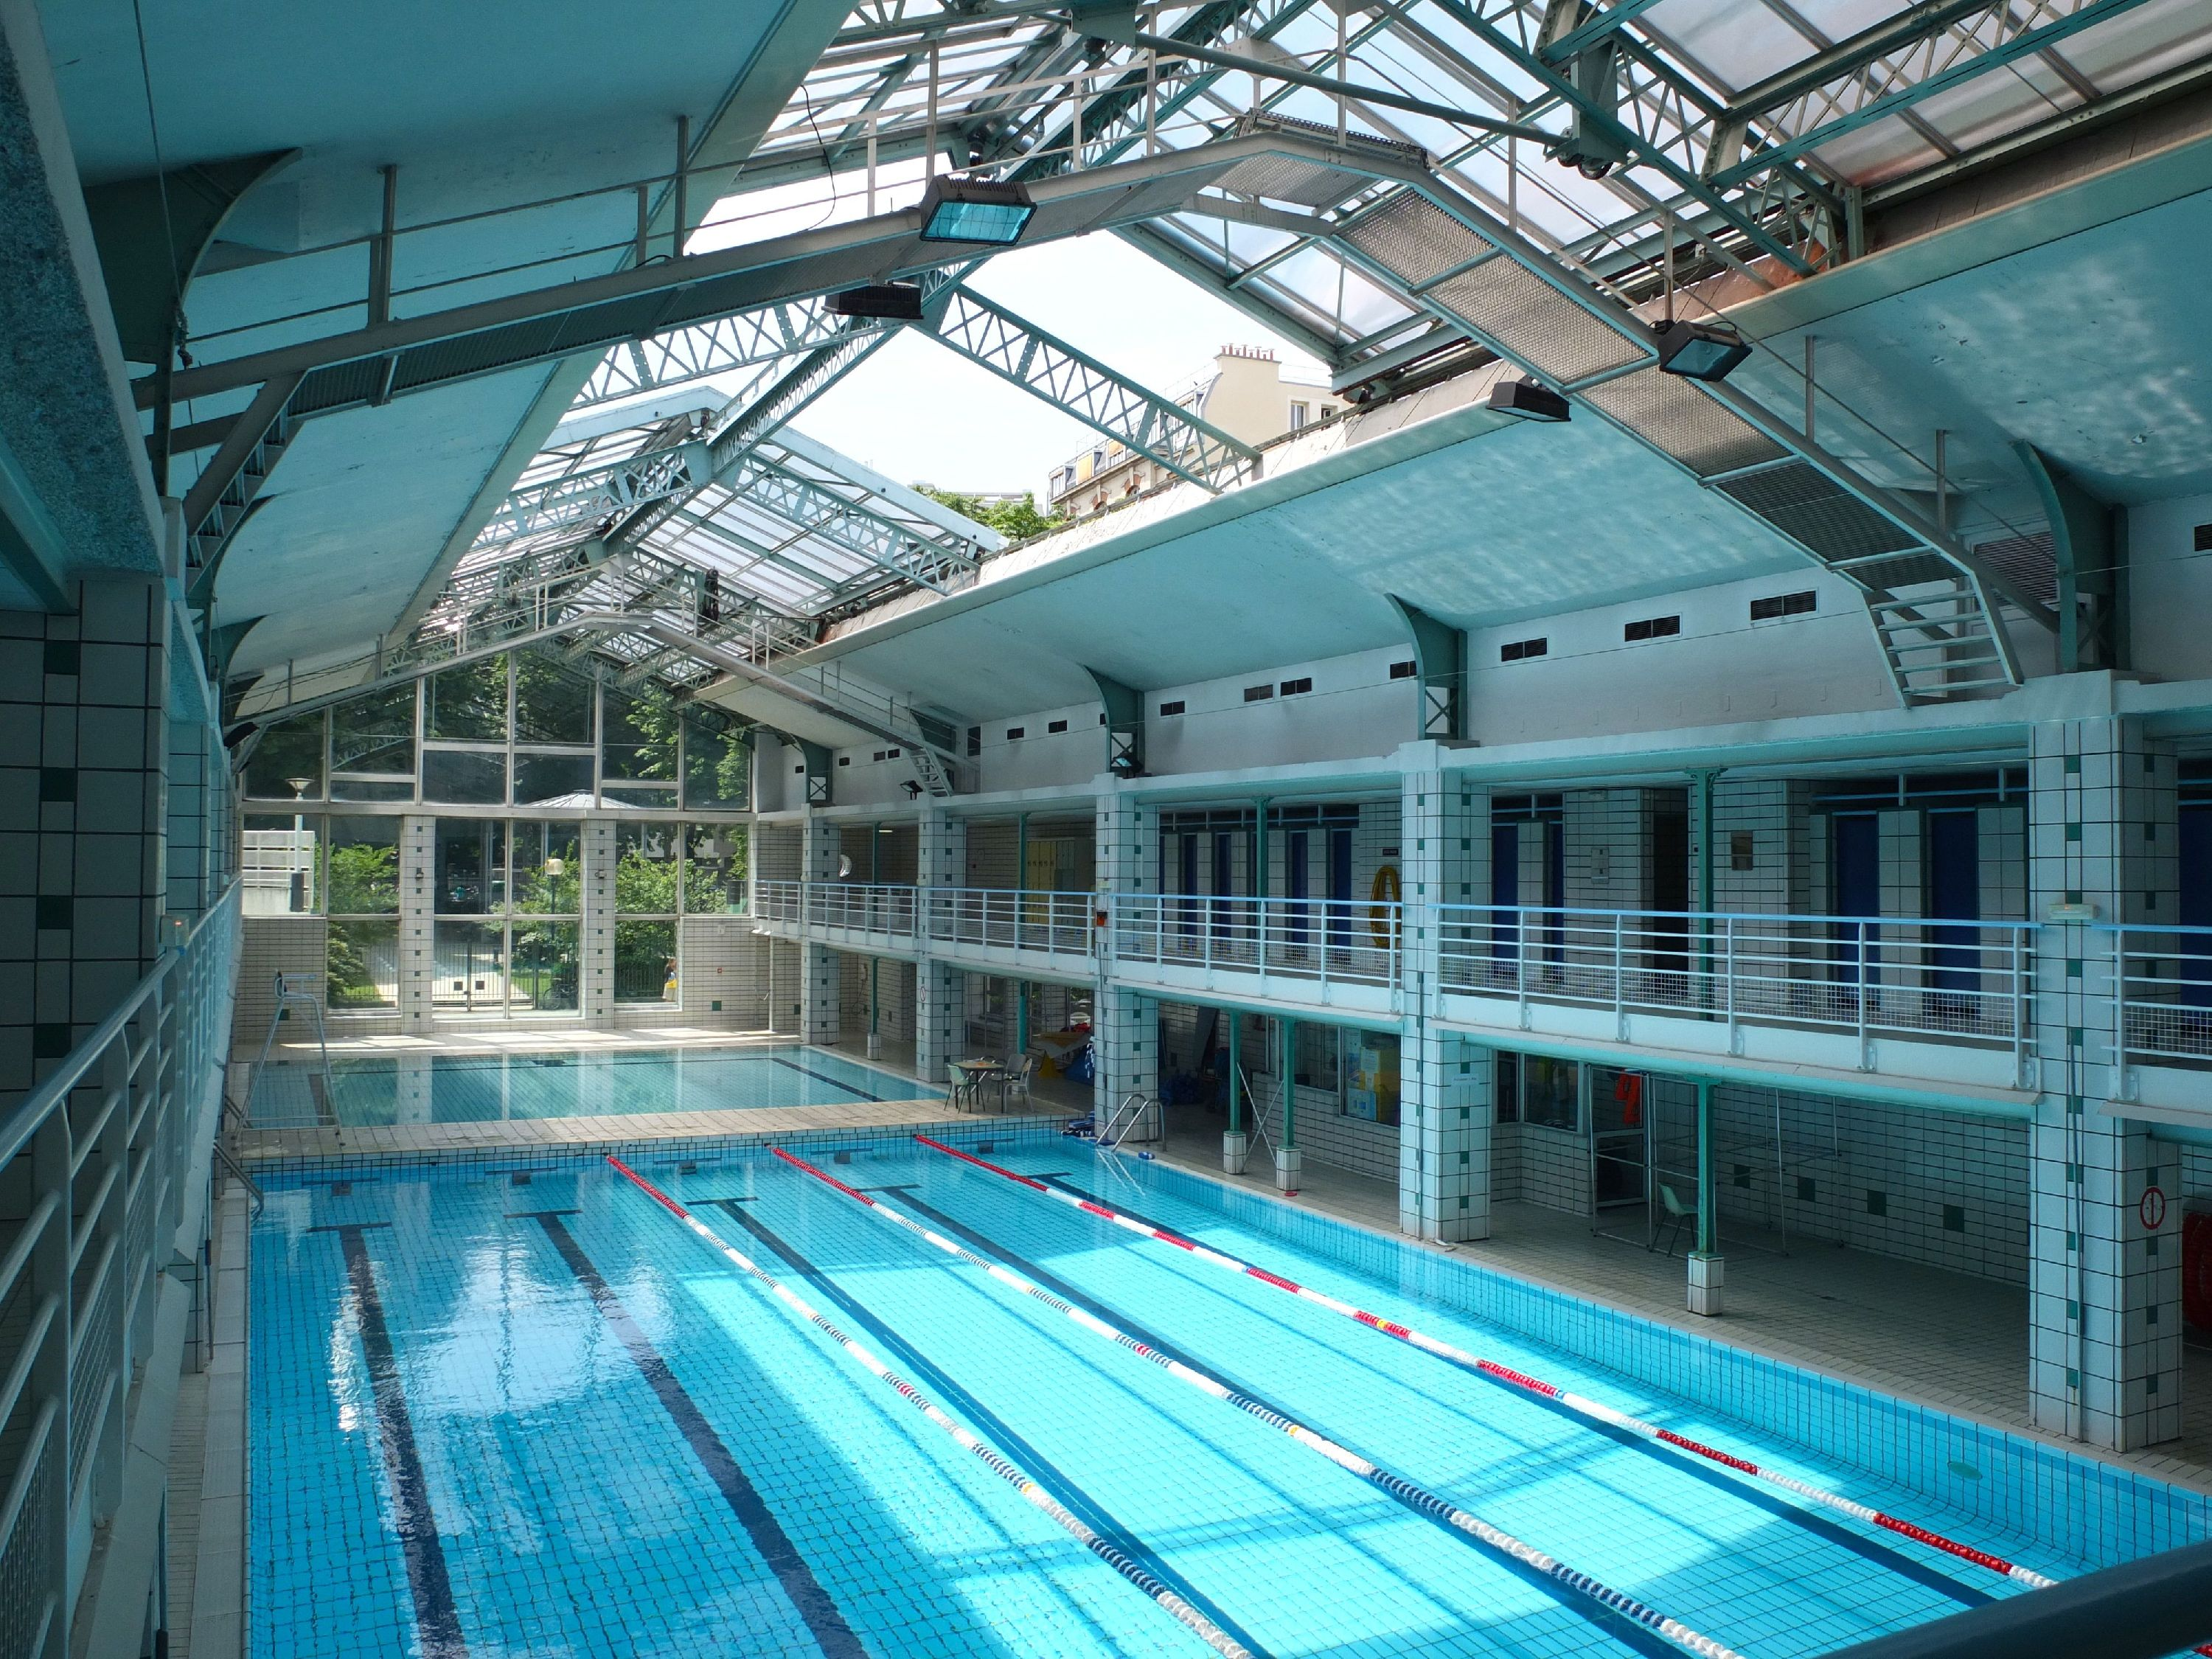 piscine h bert sport la chapelle paris ForPiscine 18eme Paris